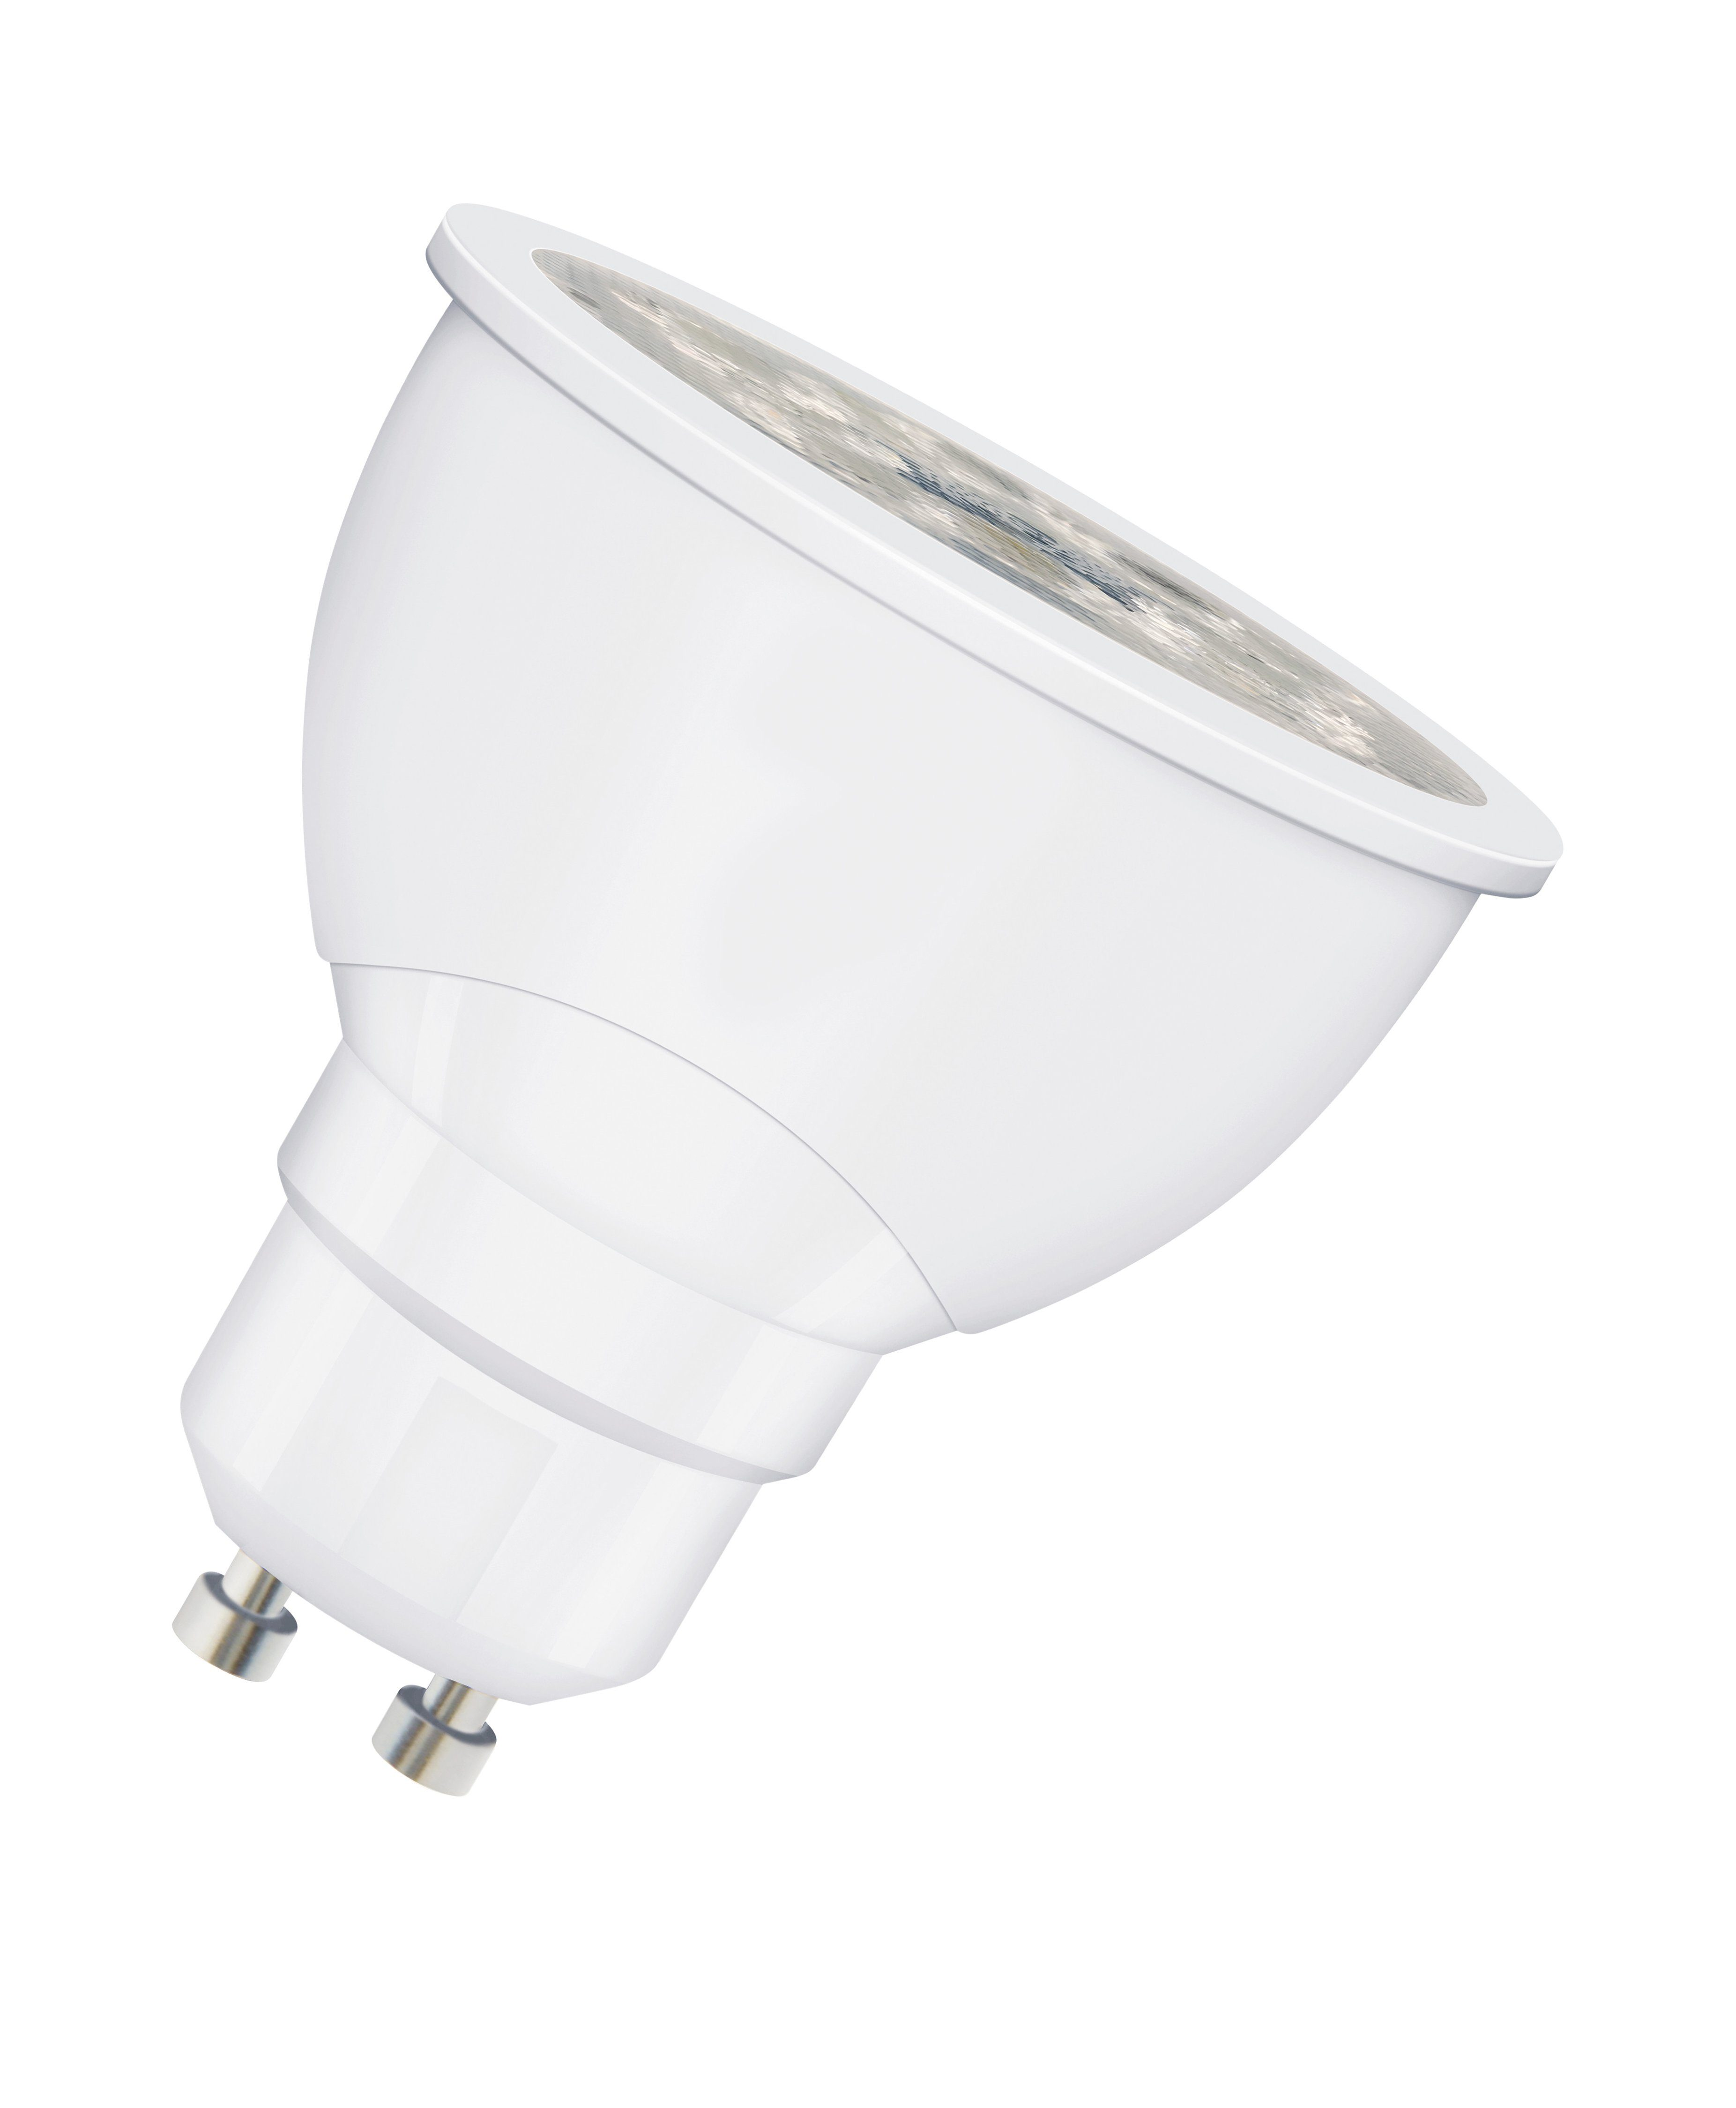 Osram SMART+ Smart Home LED-Retrofit-Lampe, Temp. Einstellbar, PAR16 »SPOT GU10 TUNABLE WHITE«